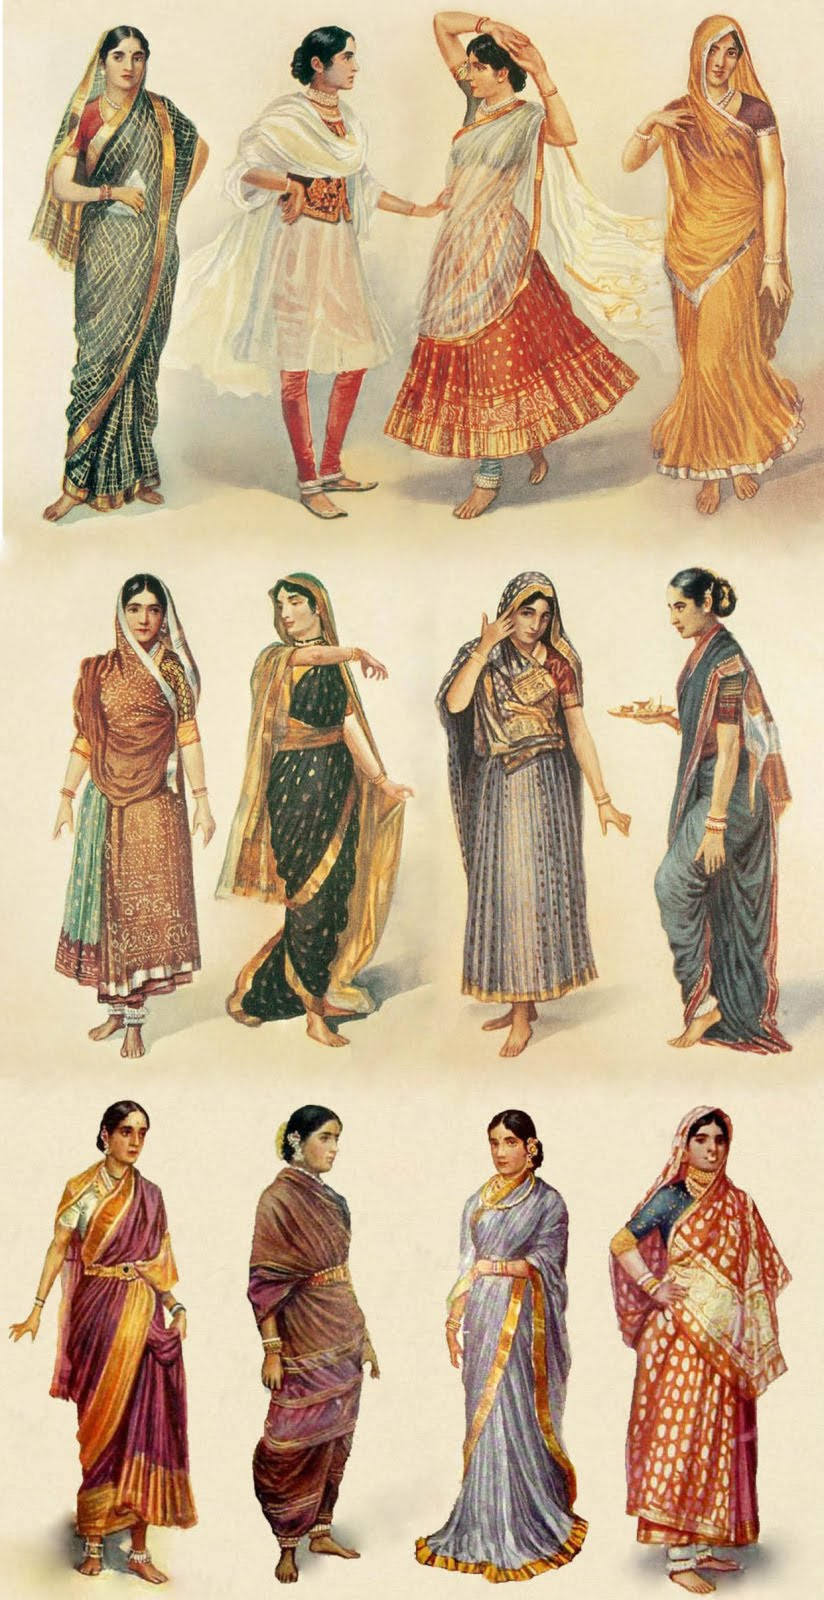 https://sites.google.com/a/gsbi.org/gvc1416/clothing/traditional-clothing/Styles_of_Sari.jpg?attredirects=0